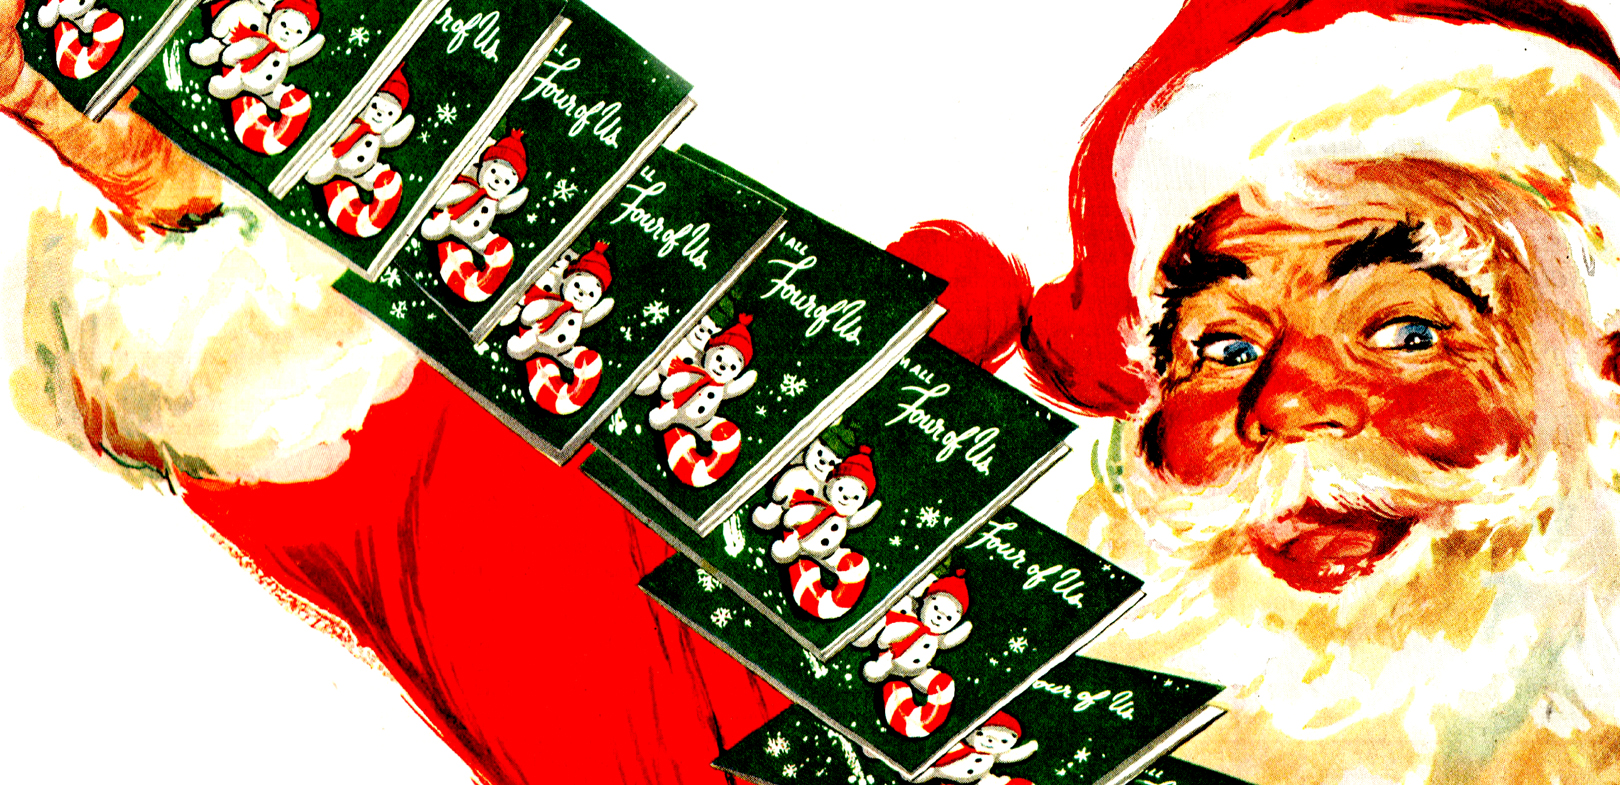 December 24, 1963 – Jean Shepherd Has A Word Or Two About Christmas, Christmas Cards And The Big Day In General – 1963 – Past Daily Holiday Gallimaufry